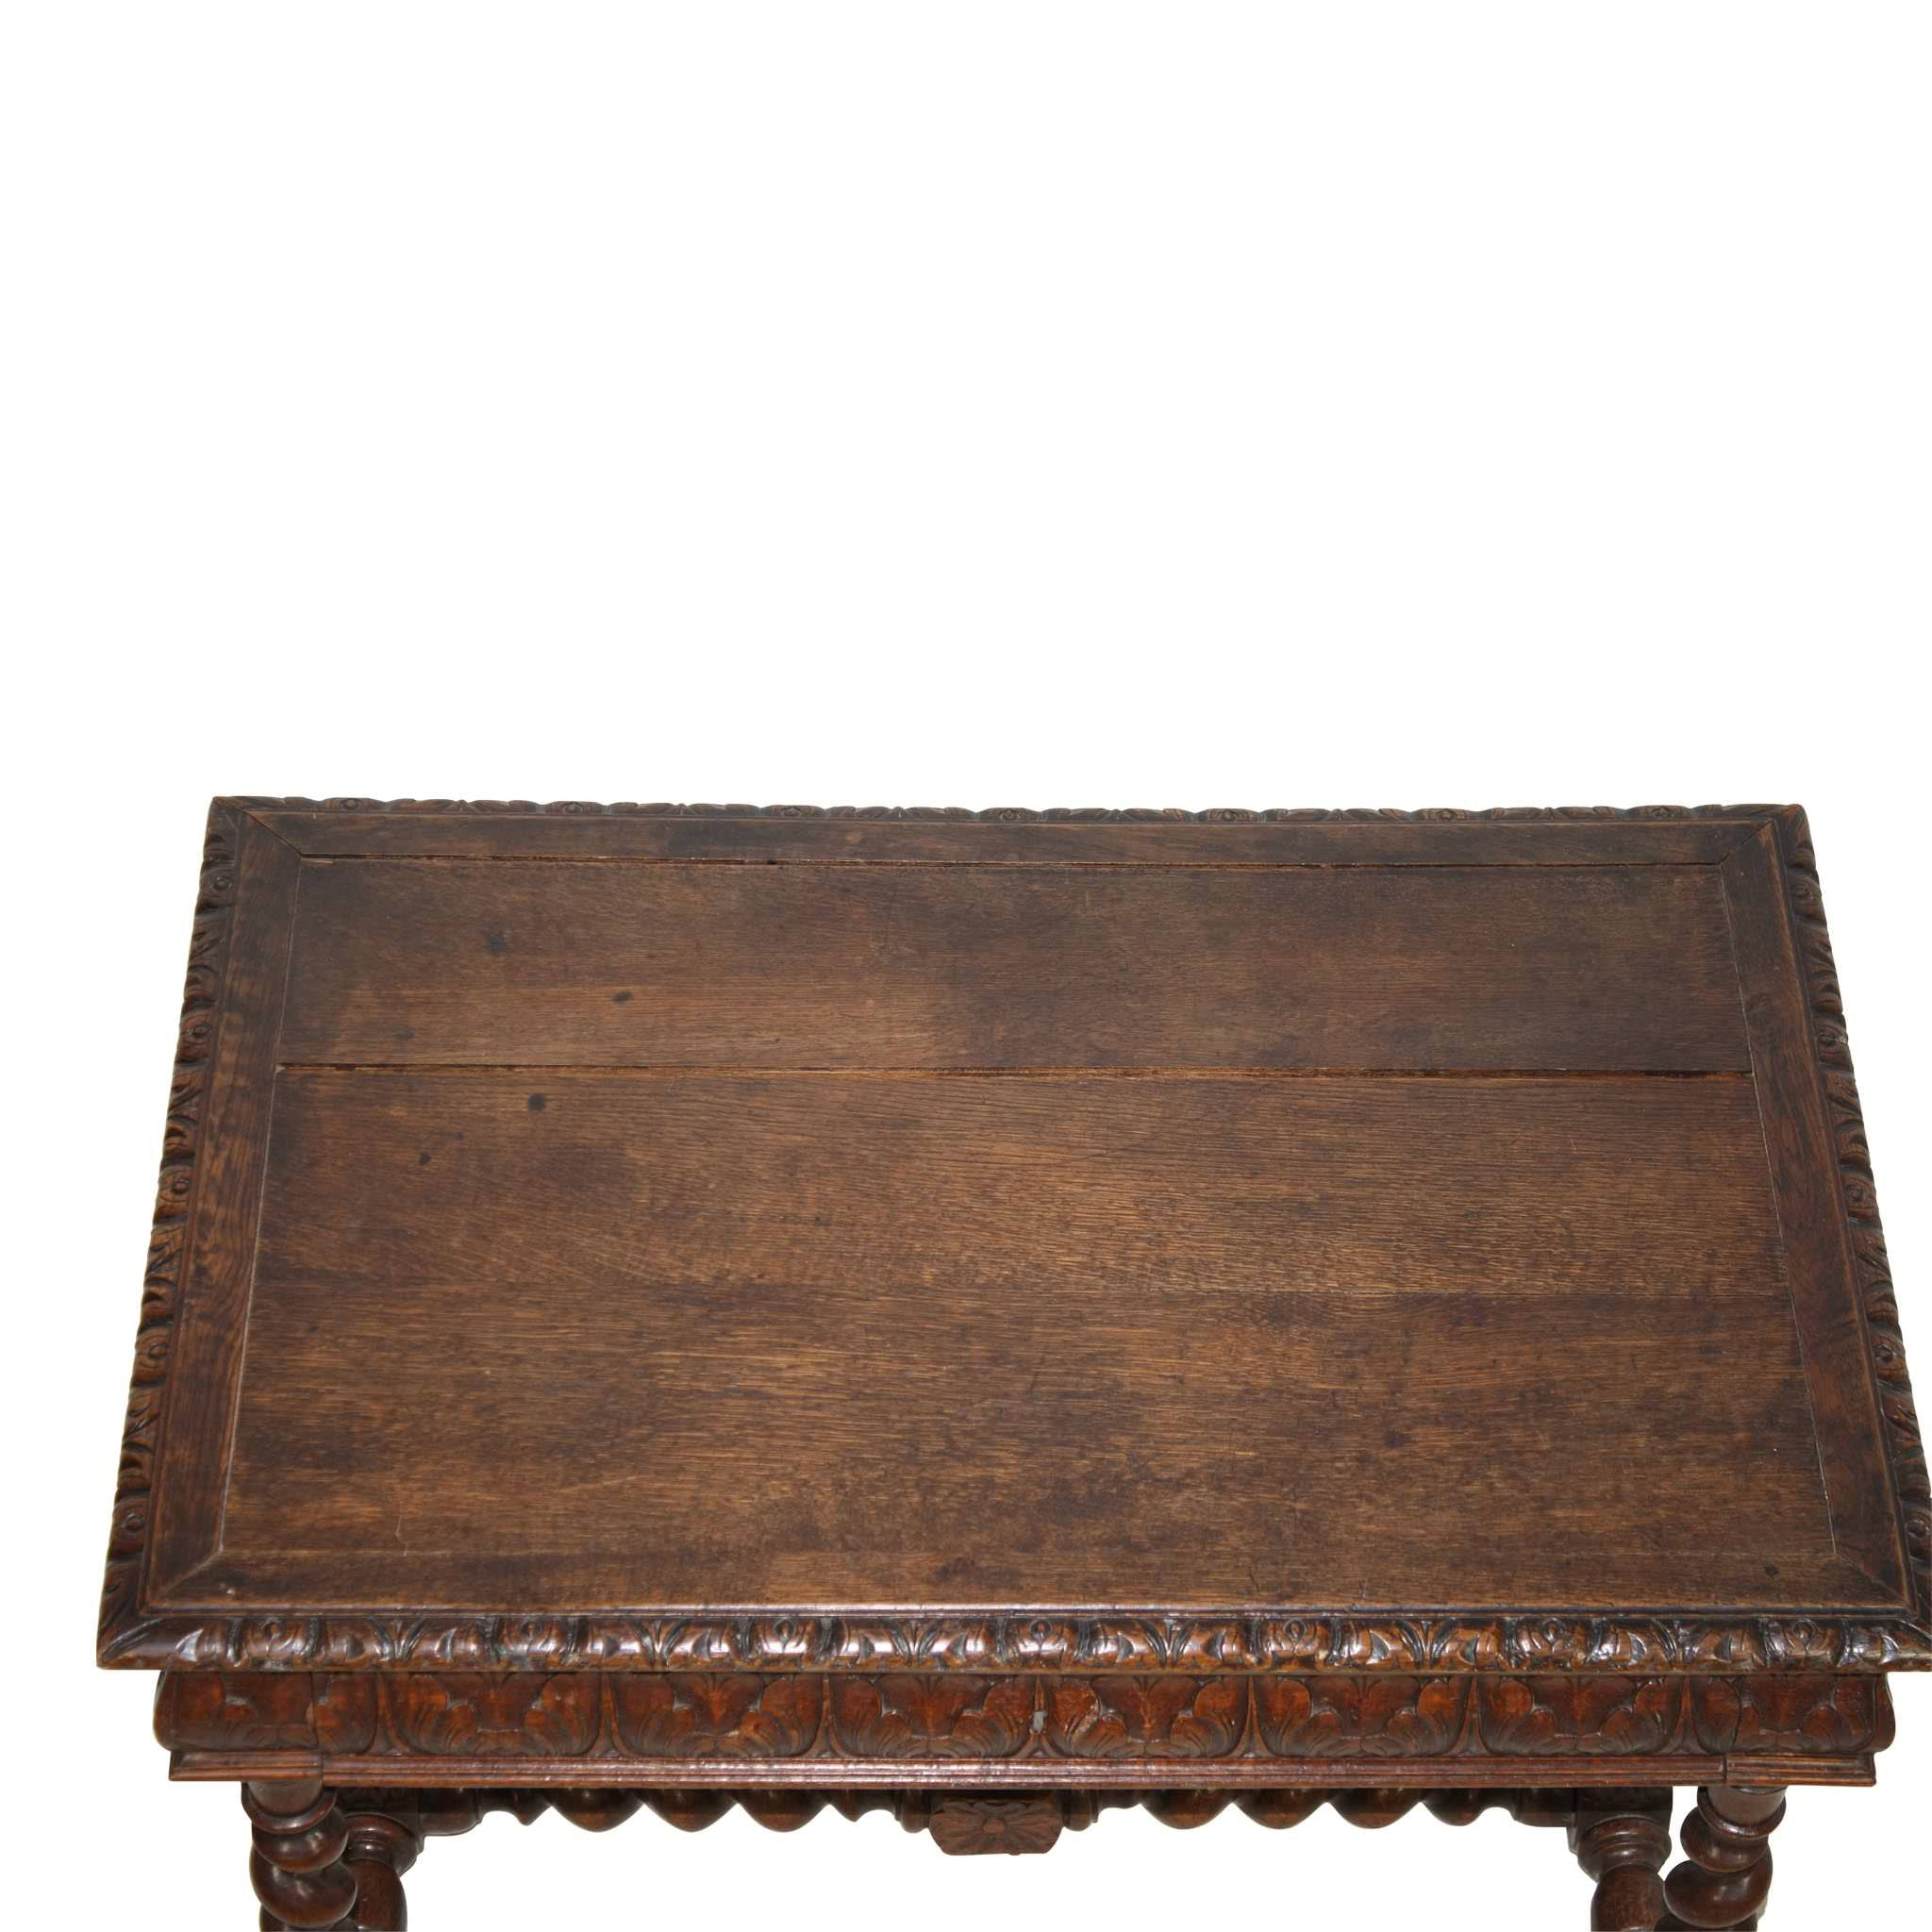 Carved Desk with Barley Twist Legs